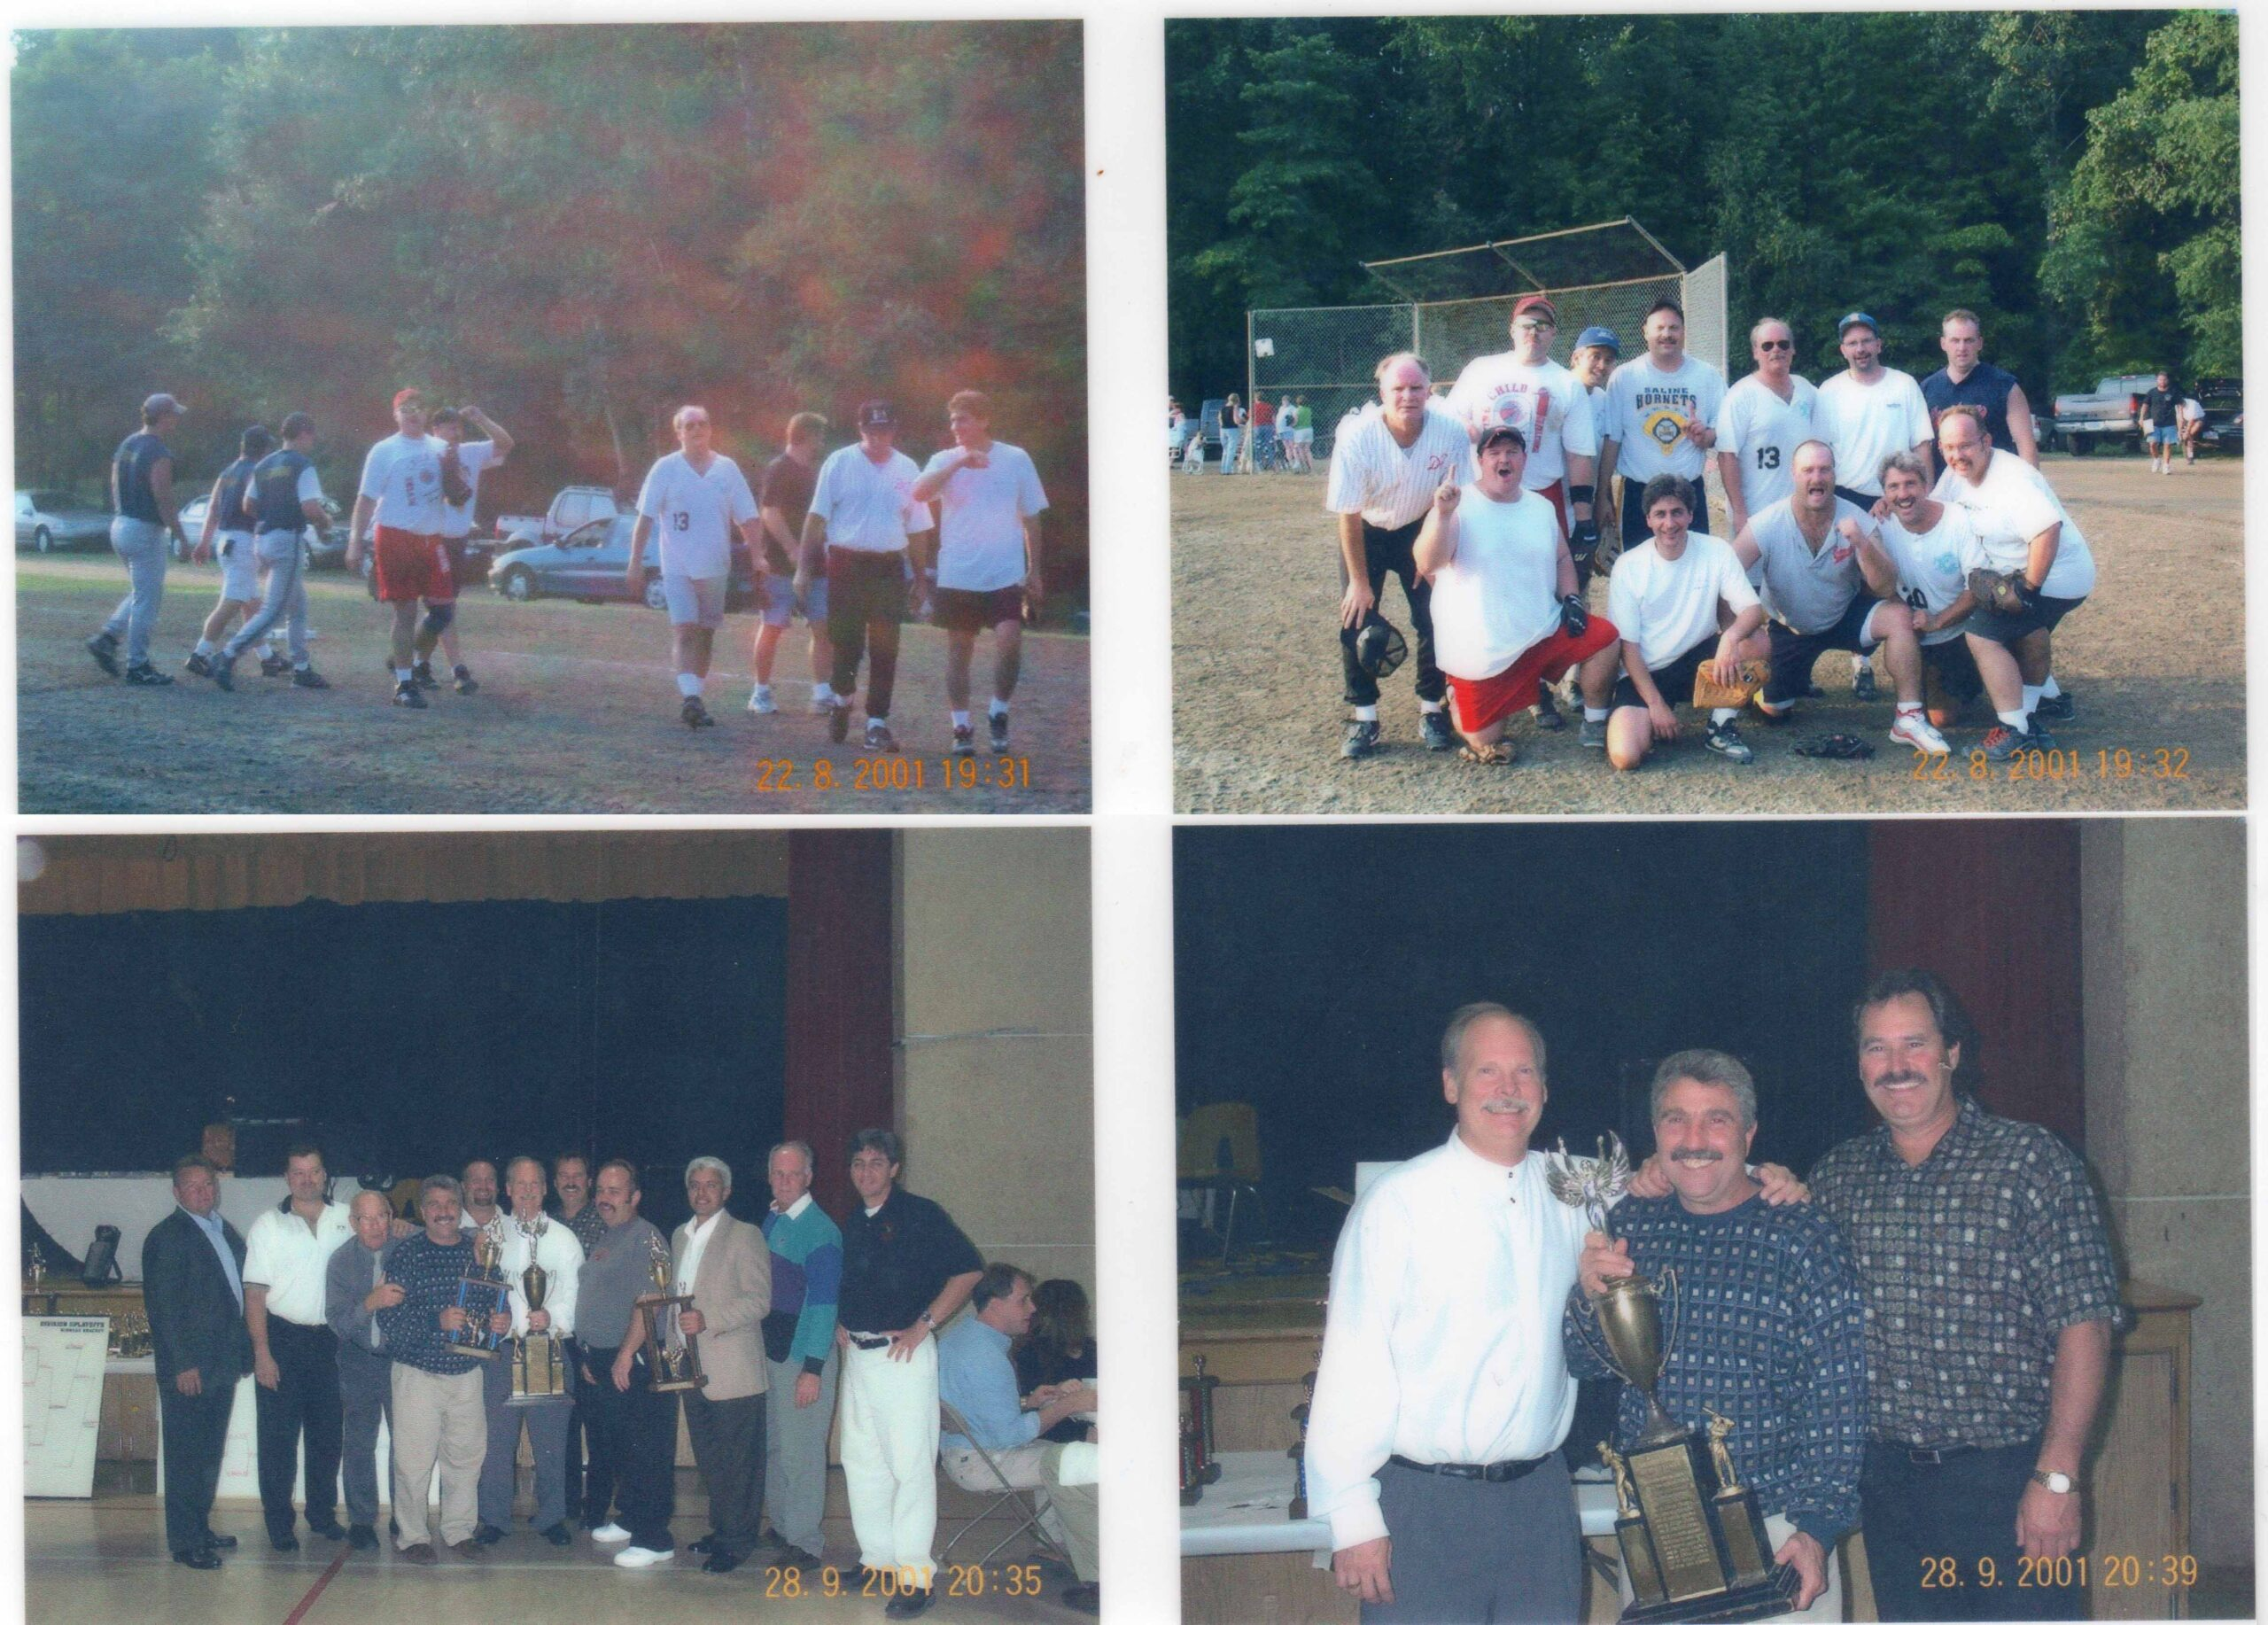 Devine child 2001 Division and playoff champs